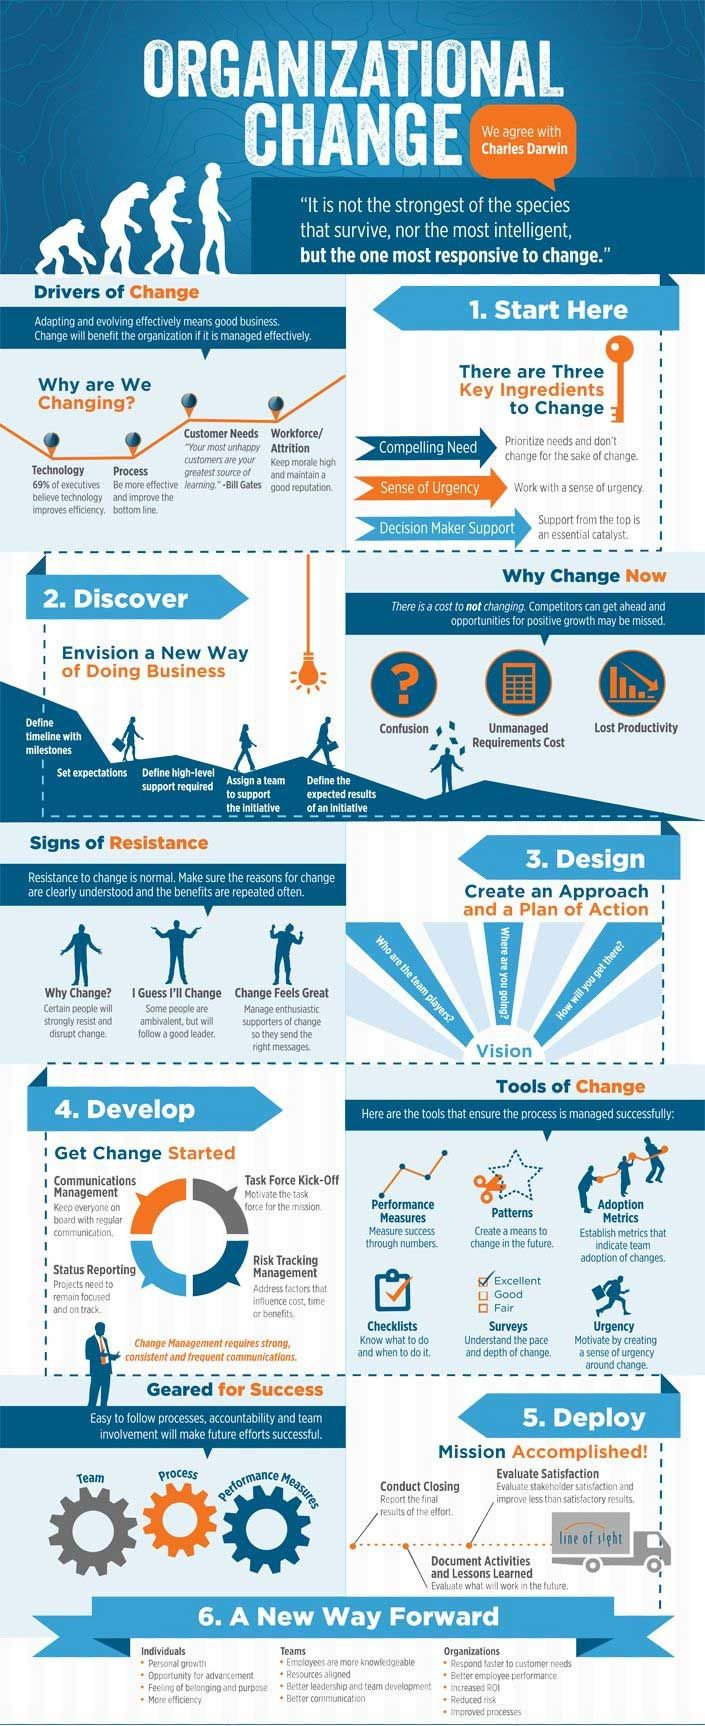 Change Management Process - http://olbe.com.br/main/change-management-process/